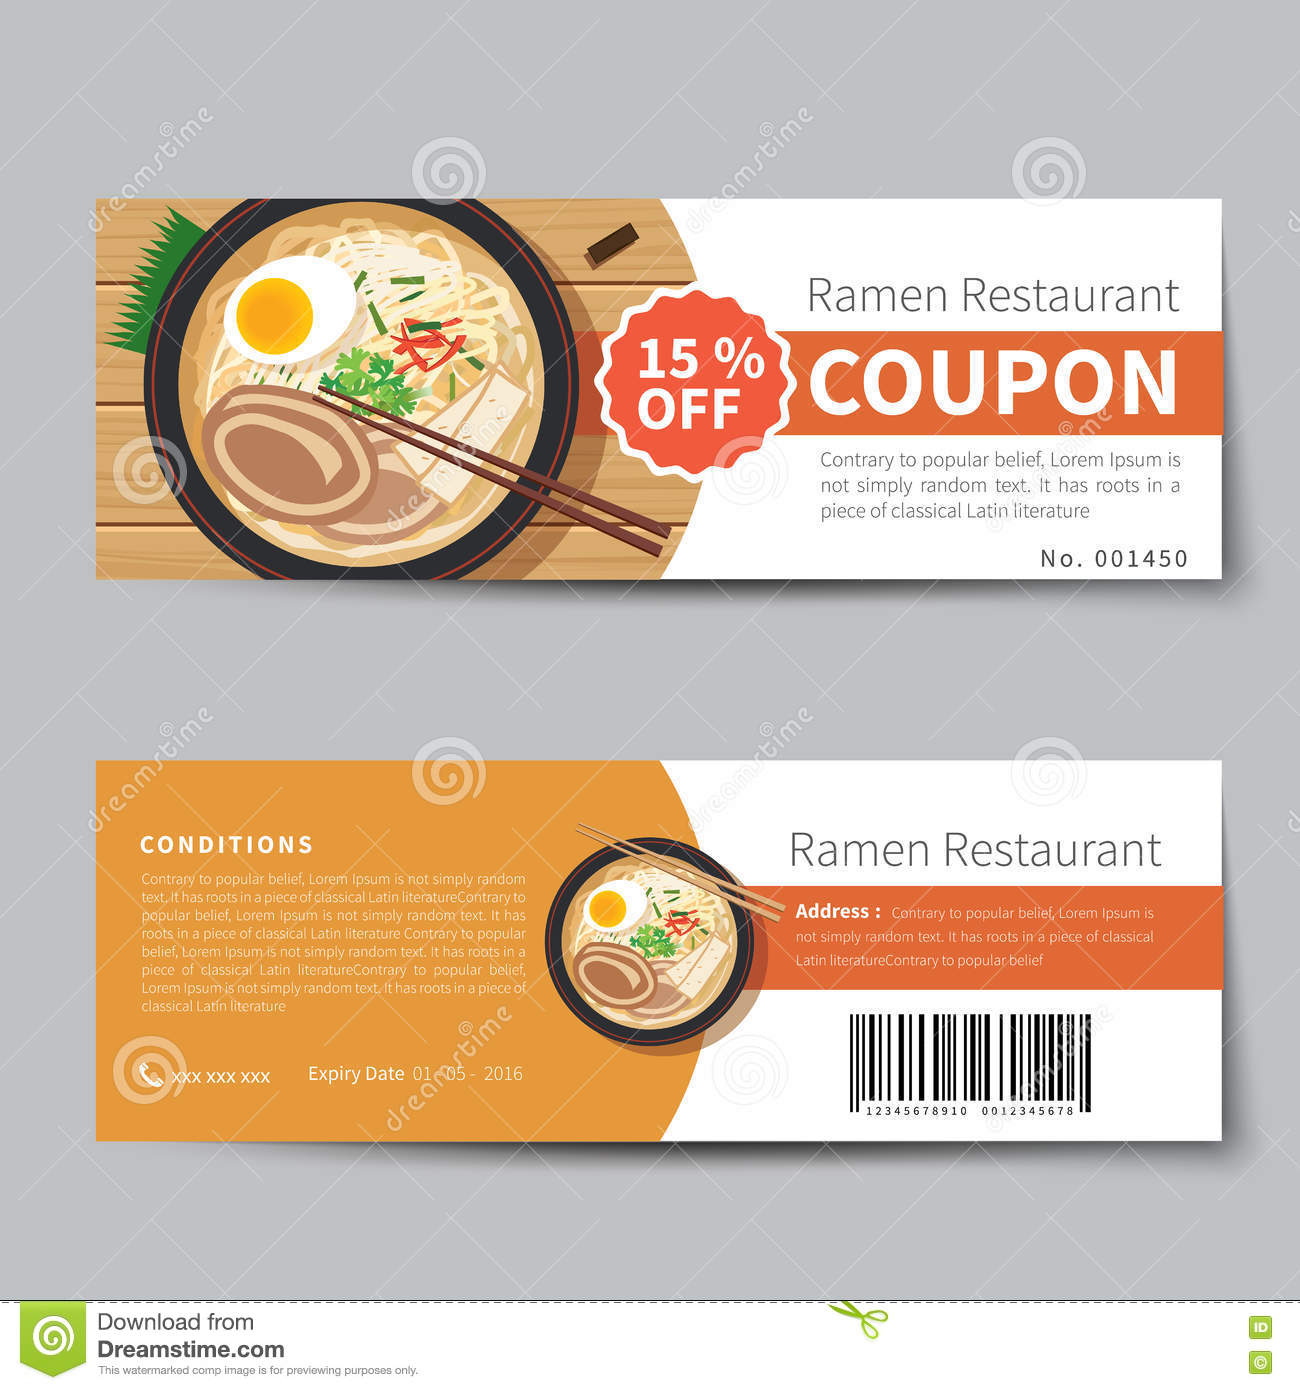 Food discount coupons in ahmedabad